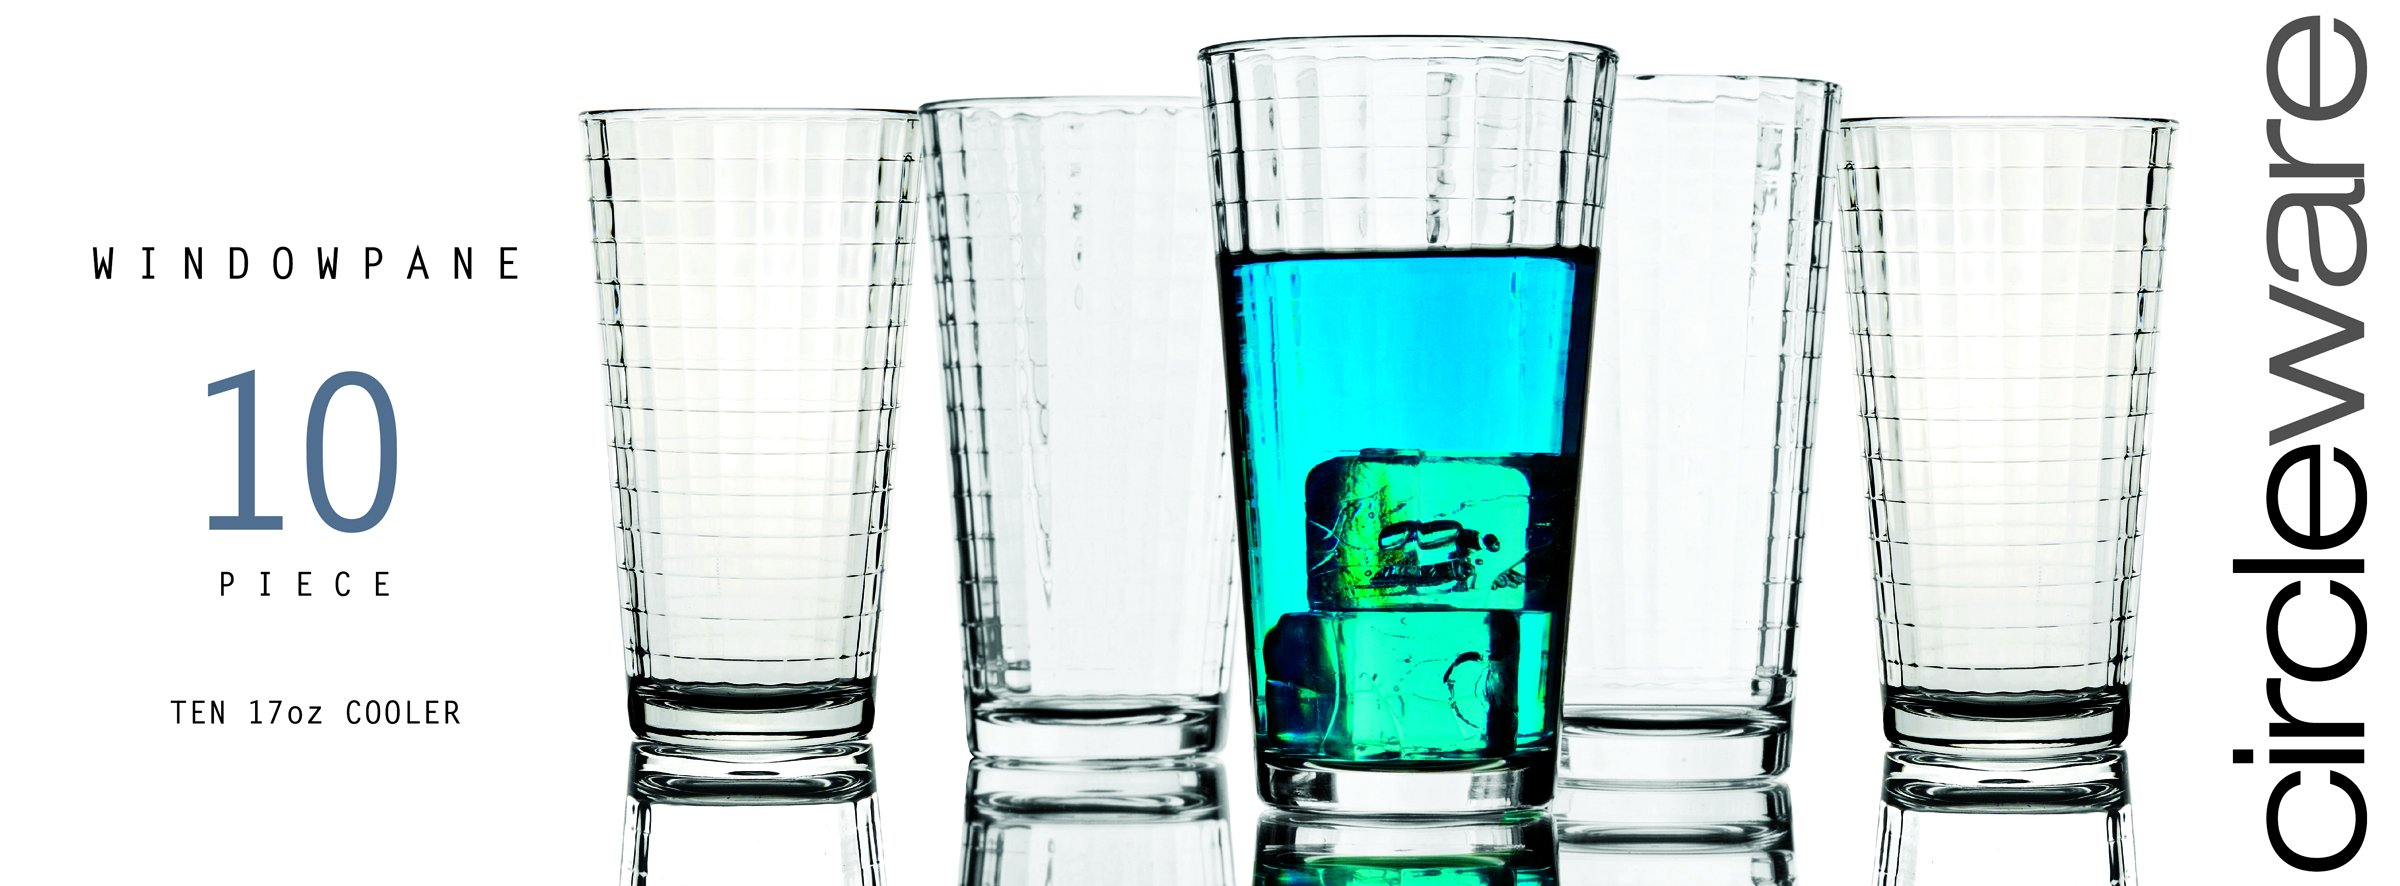 Circleware Windowpane Huge Set of 10 Tall Heavy Base Highball Drinking Glasses, 15.75 oz Lead Free Dishwasher Safe Glassware Glass Tumbler Drink Cups for Water, Juice, Beer, Wine and Cocktail Beverage